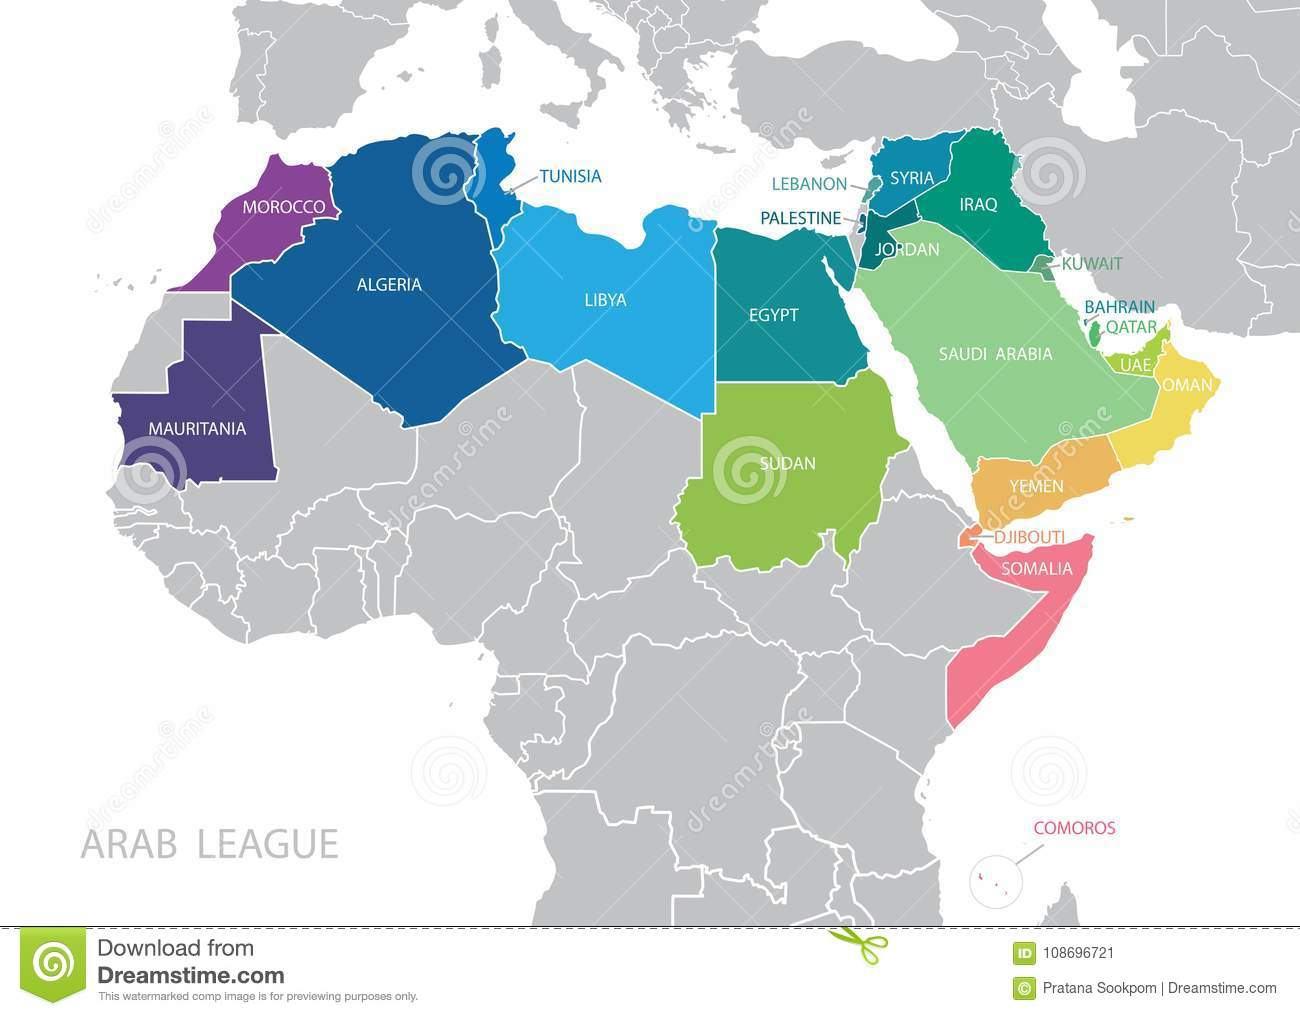 Map of arab league league of arab states map stock vector download map of arab league league of arab states map stock vector illustration gumiabroncs Images